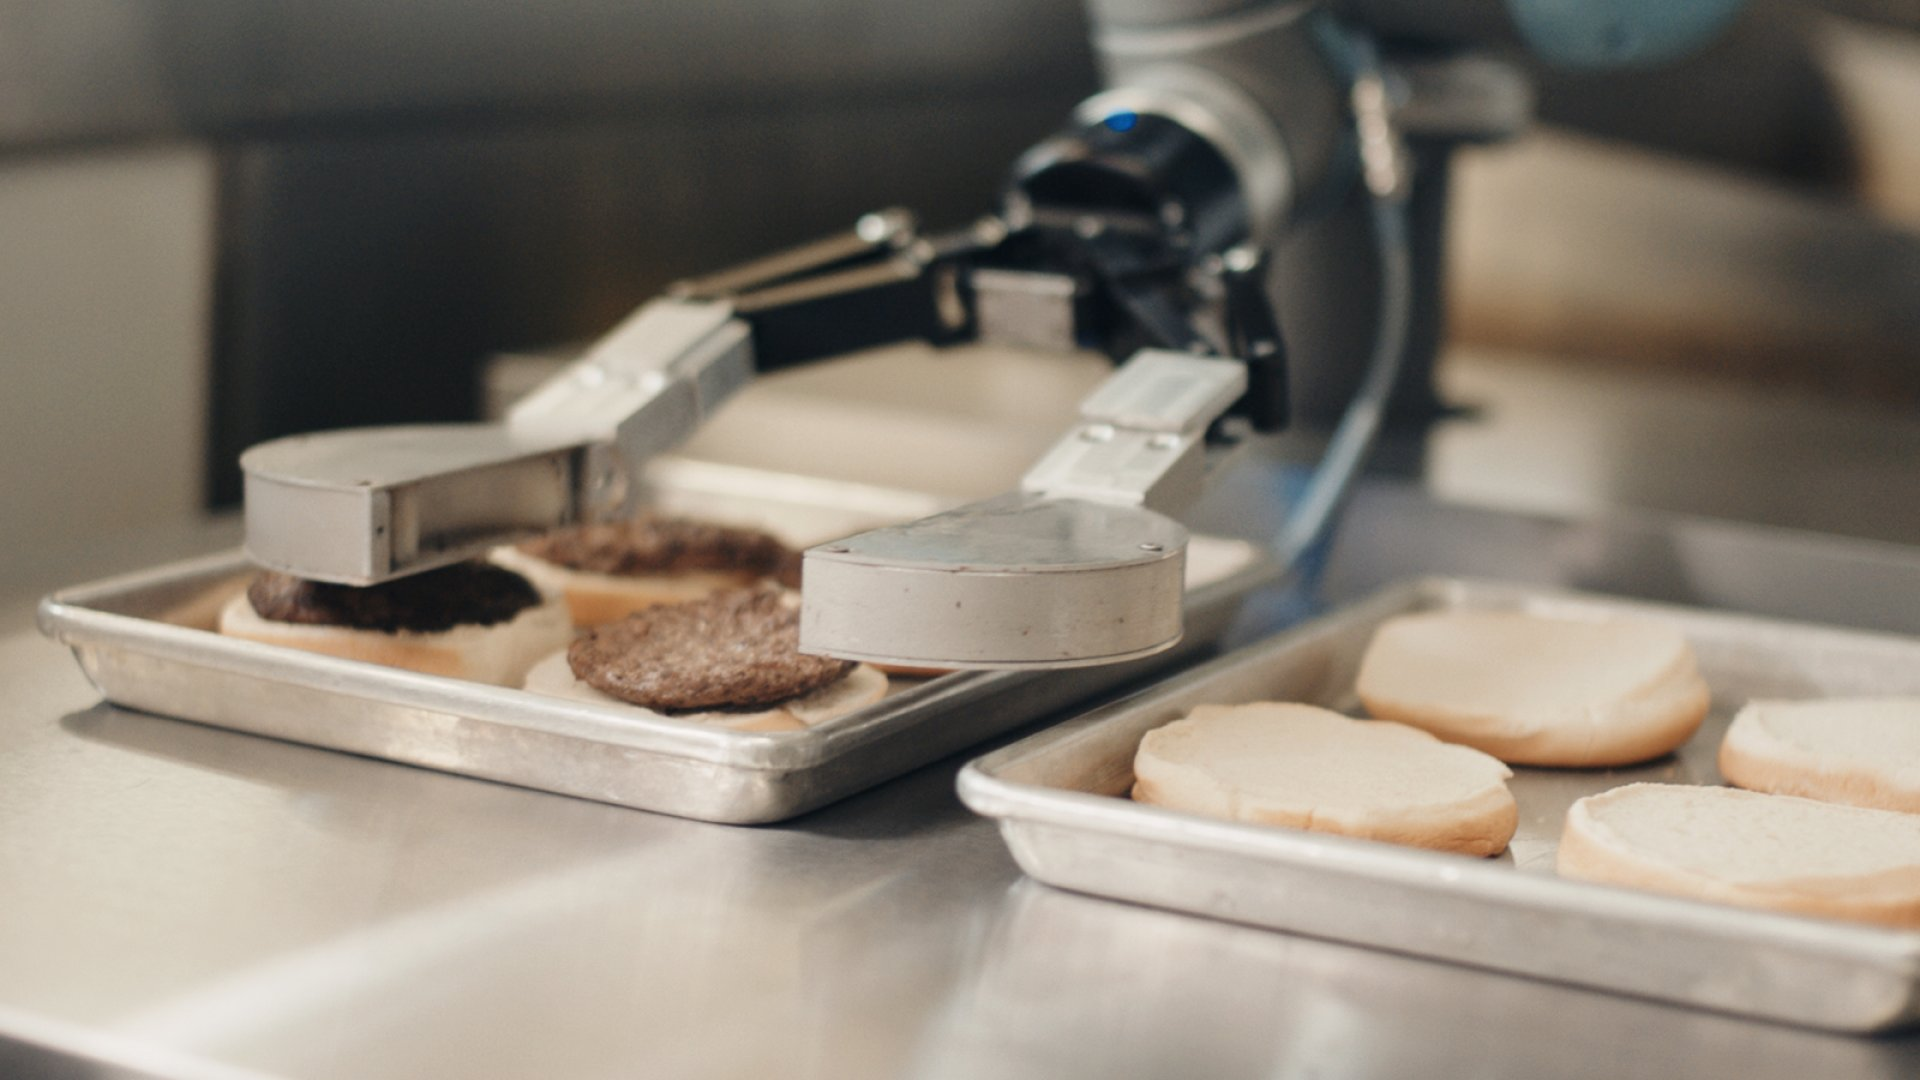 This Robot Can Cook the Perfect Burger. Should America's 2.3 Million Cooks Be Worried?